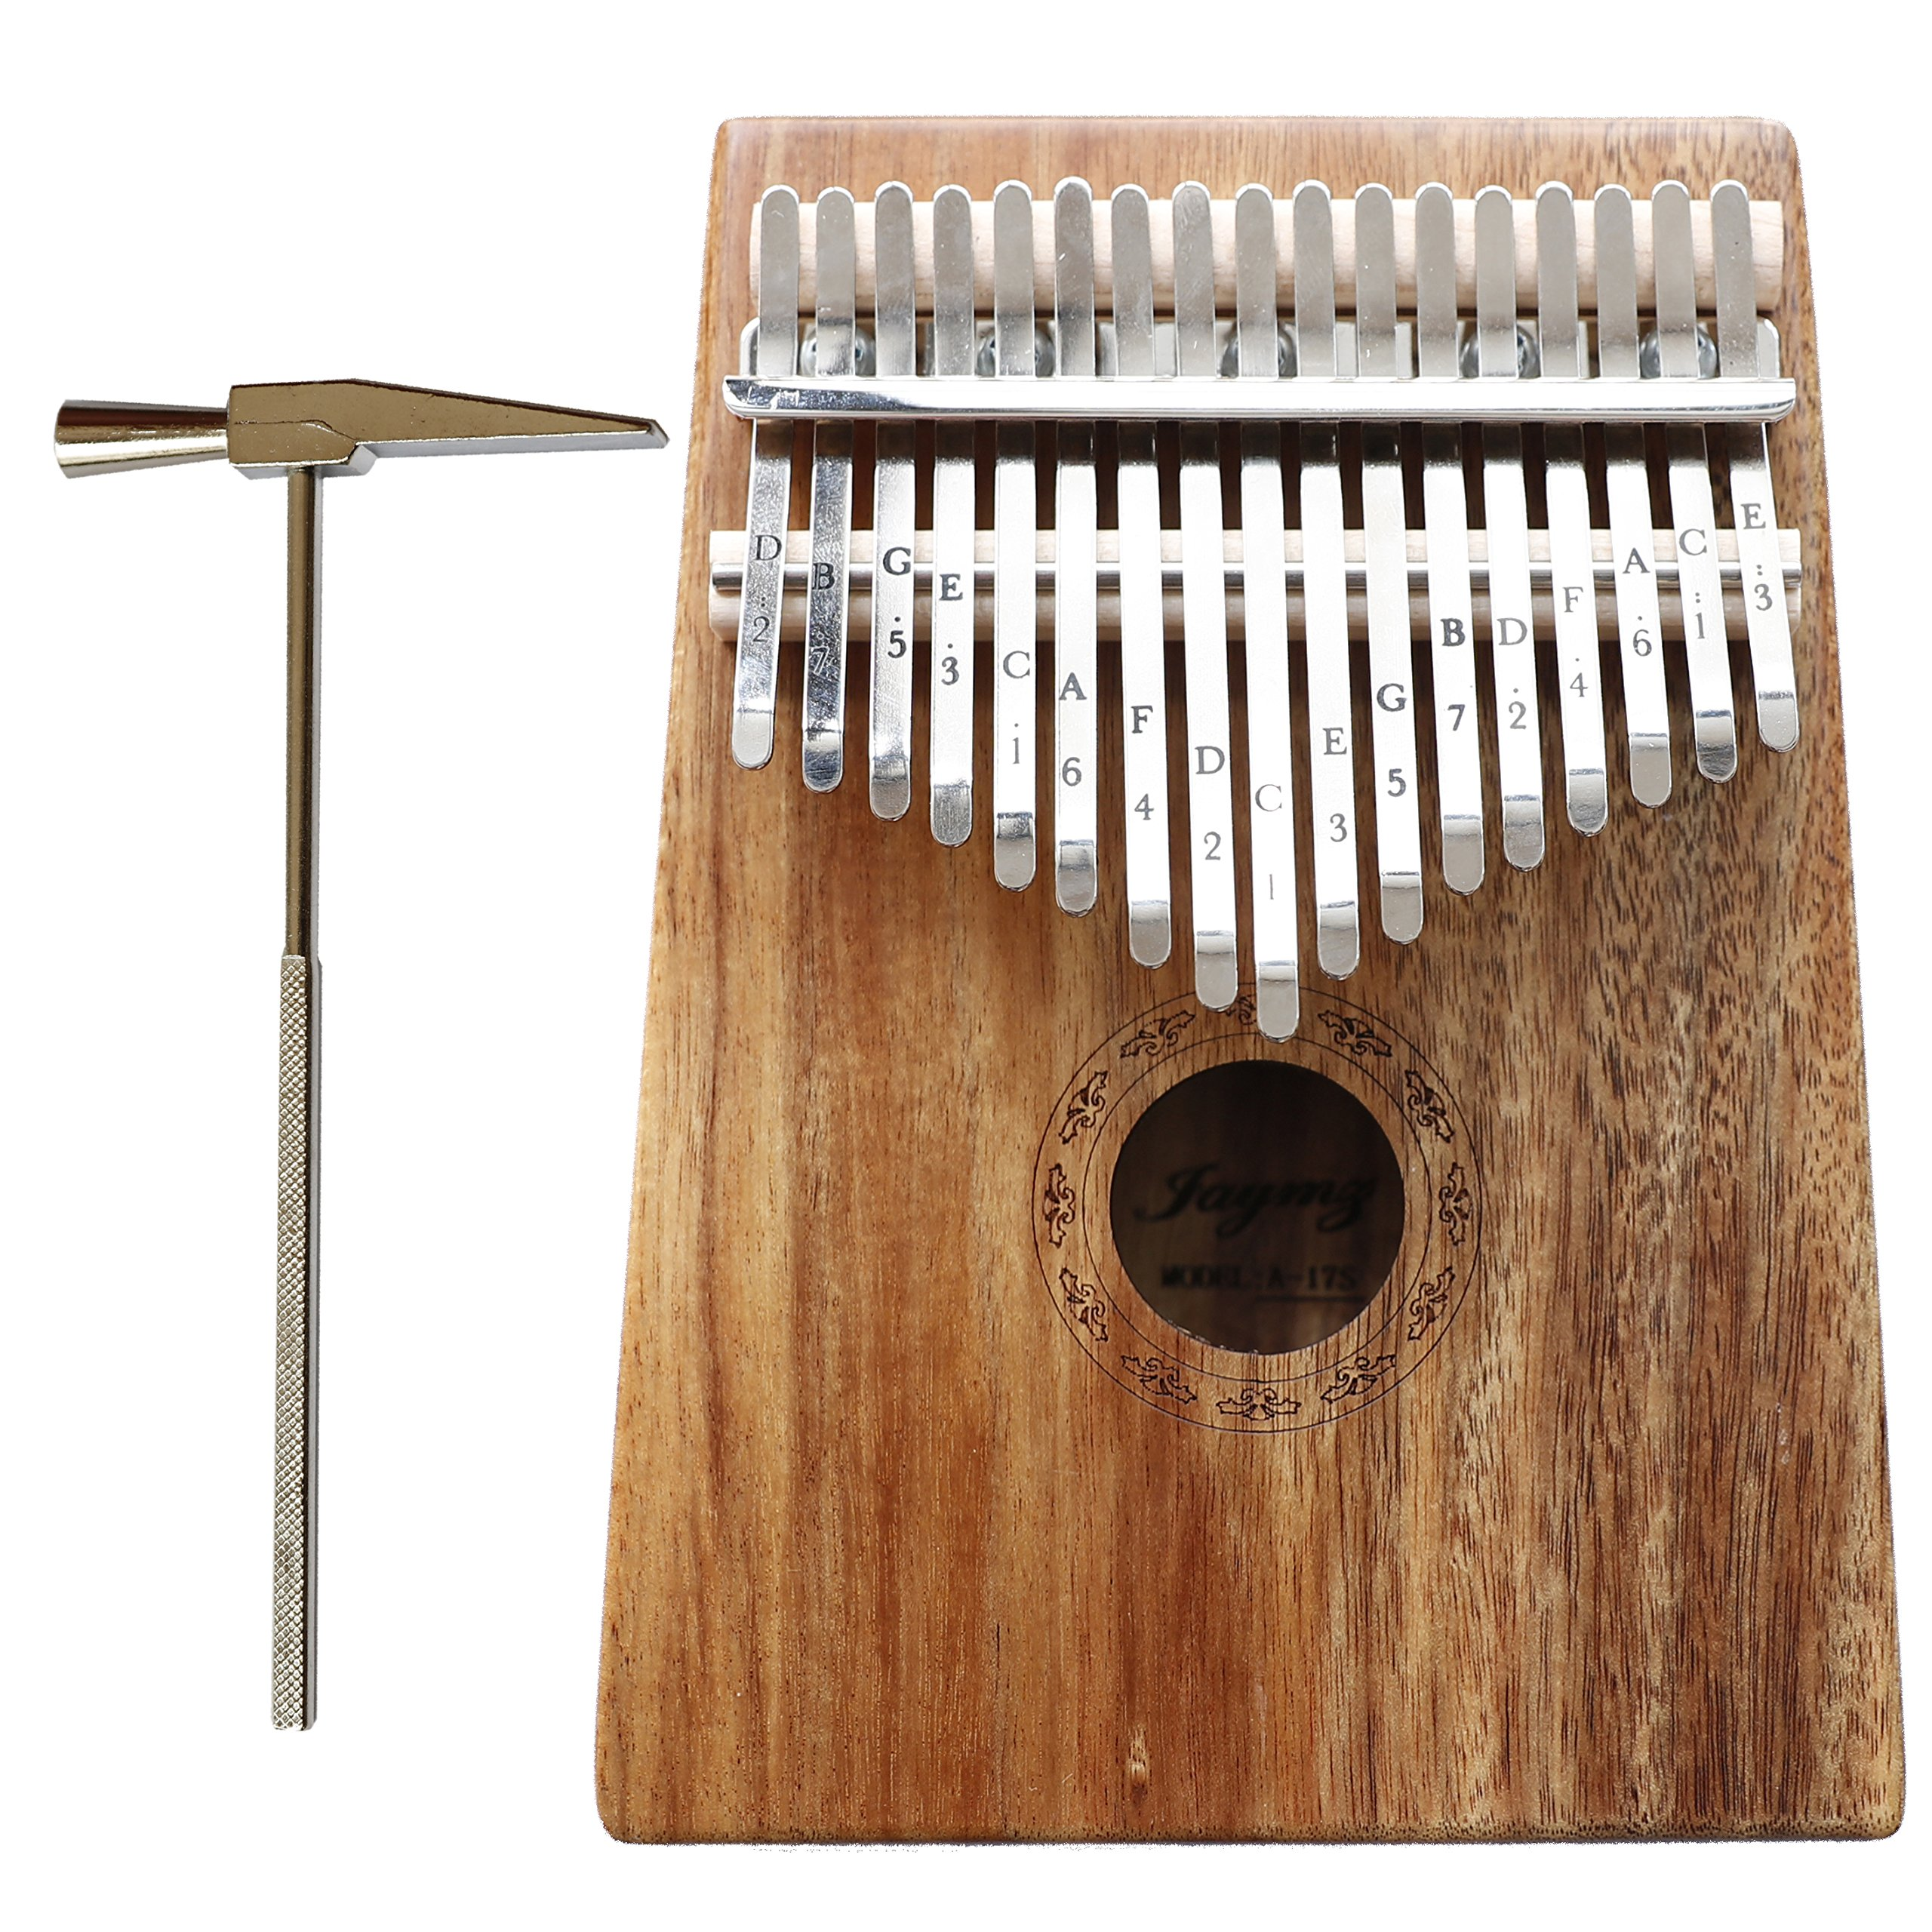 Jaymz Kalimba Mbira with 17 keys thumb piano - All SOLID WALNUT in matte color with natural grain